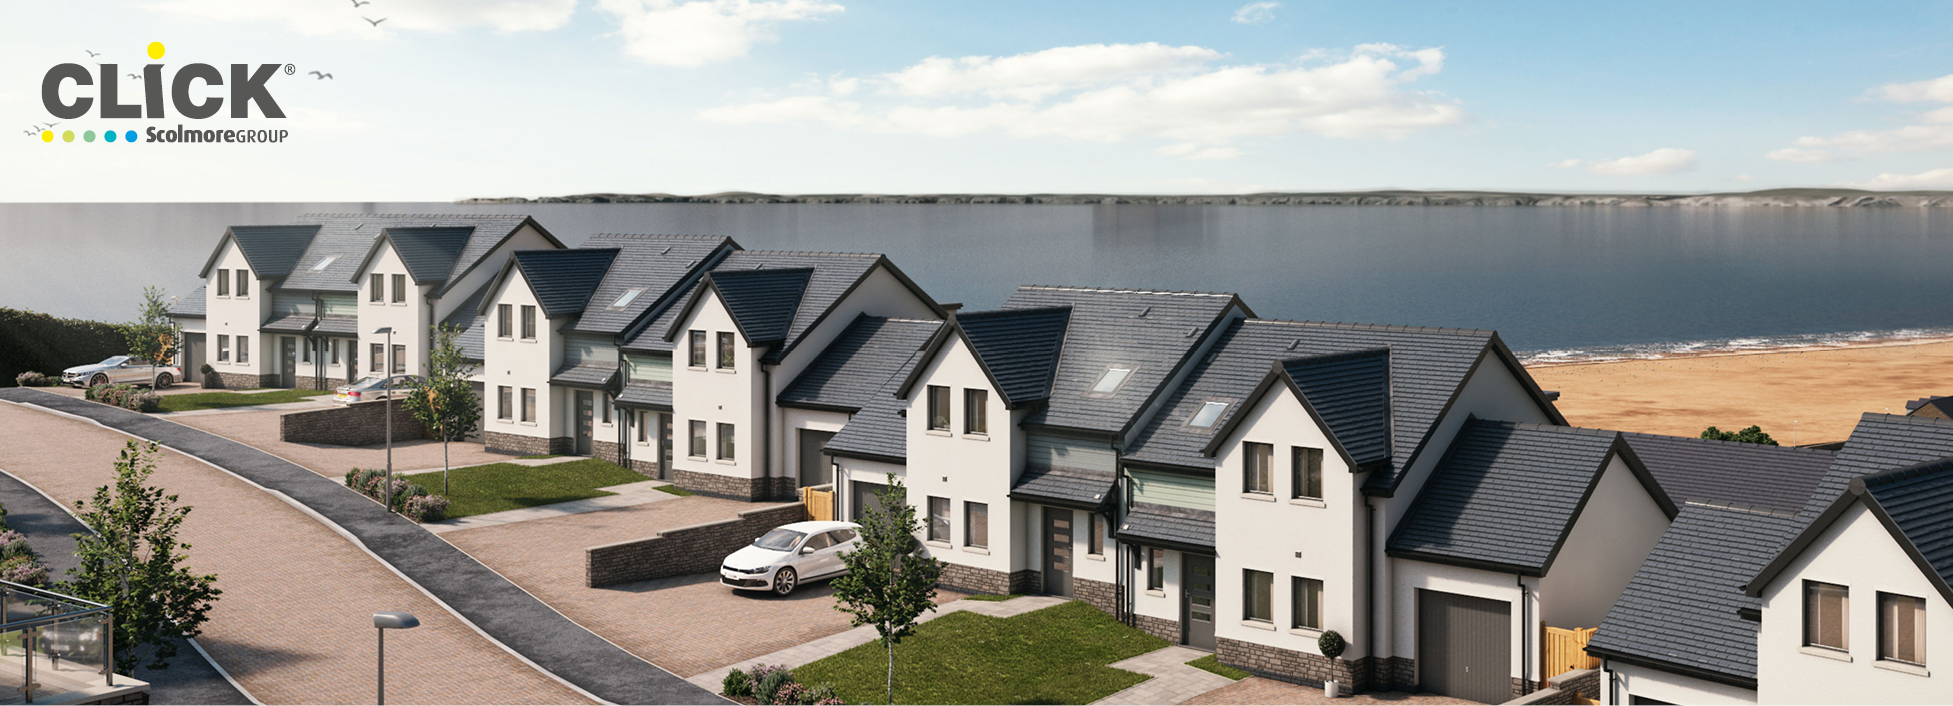 Scolmore - the definitive choice for luxury seaside homes